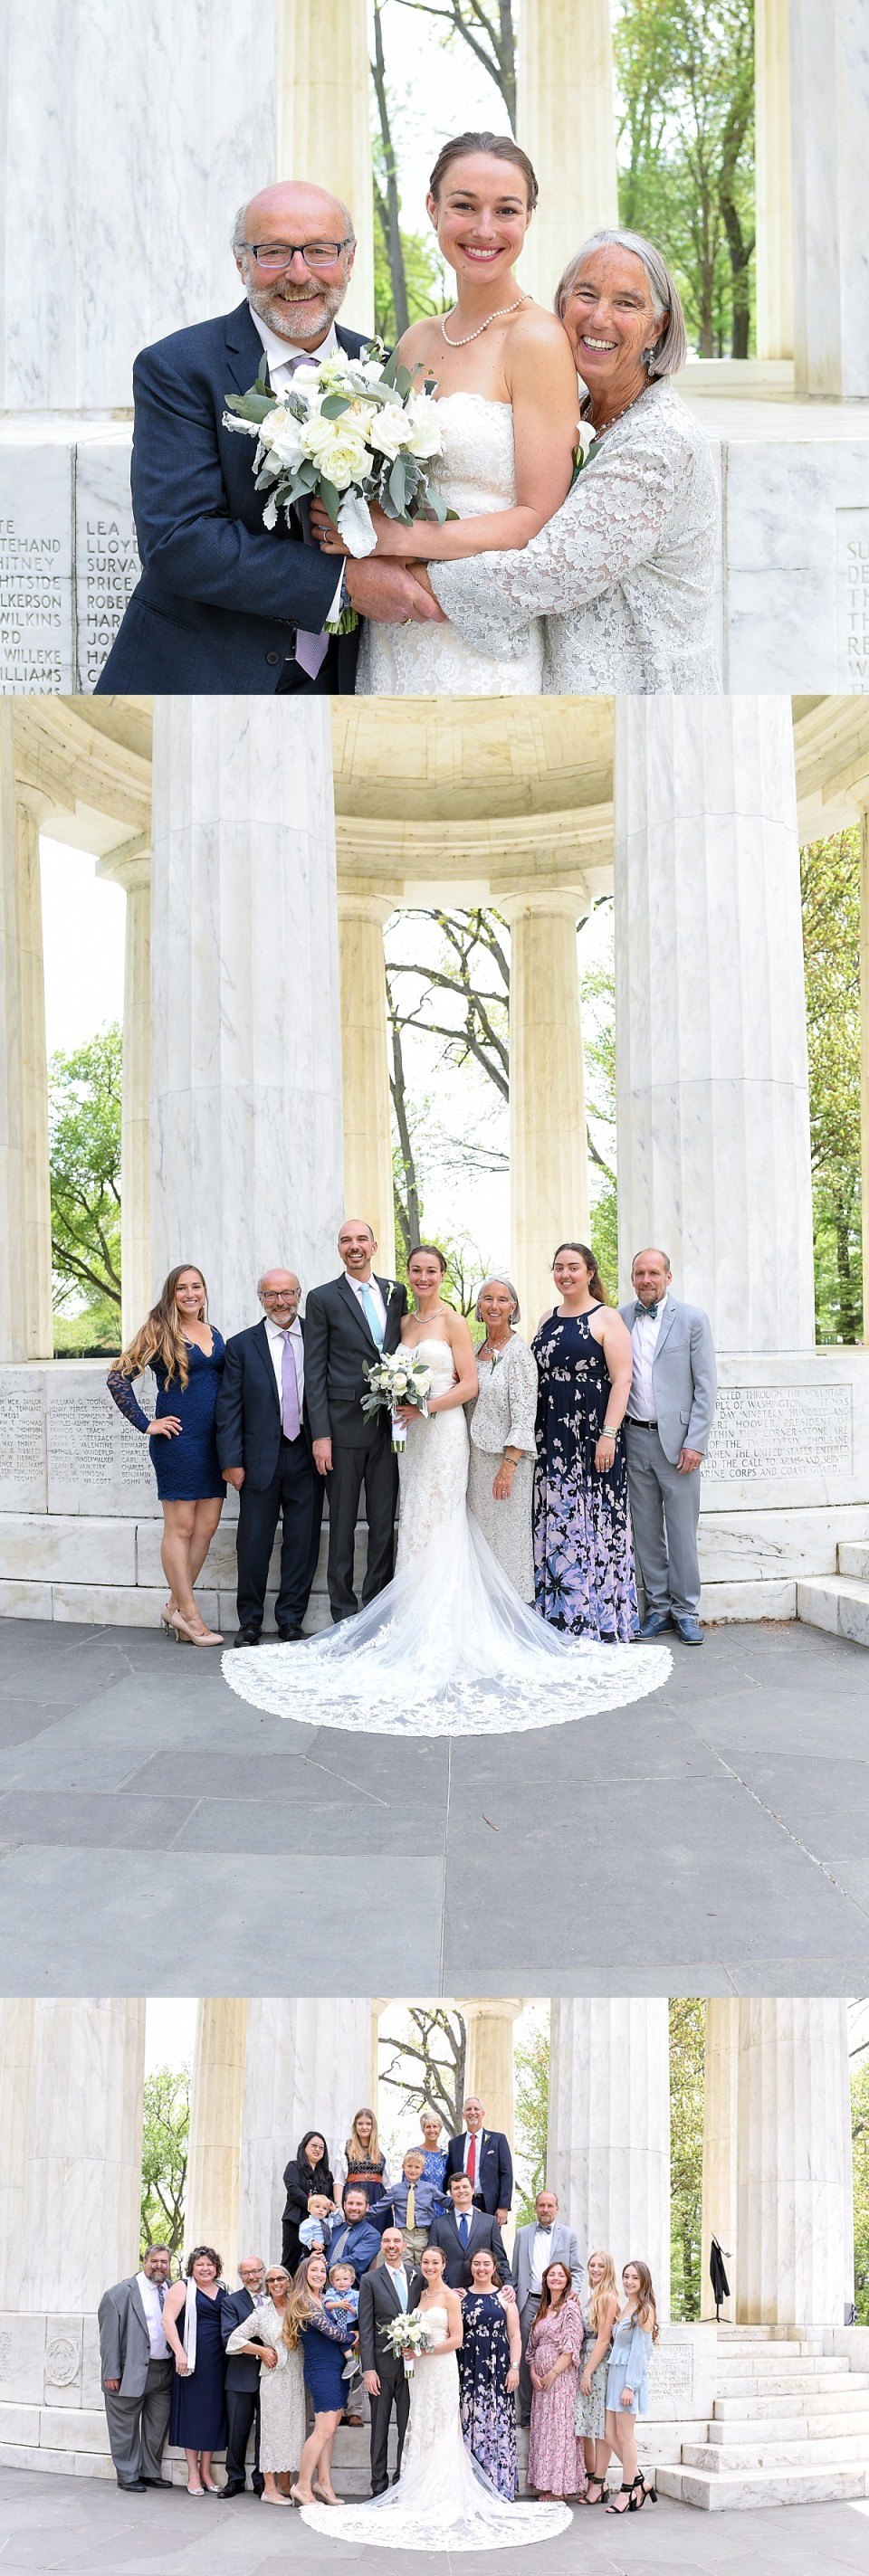 Family Portraits at DC War Memorial Wedding